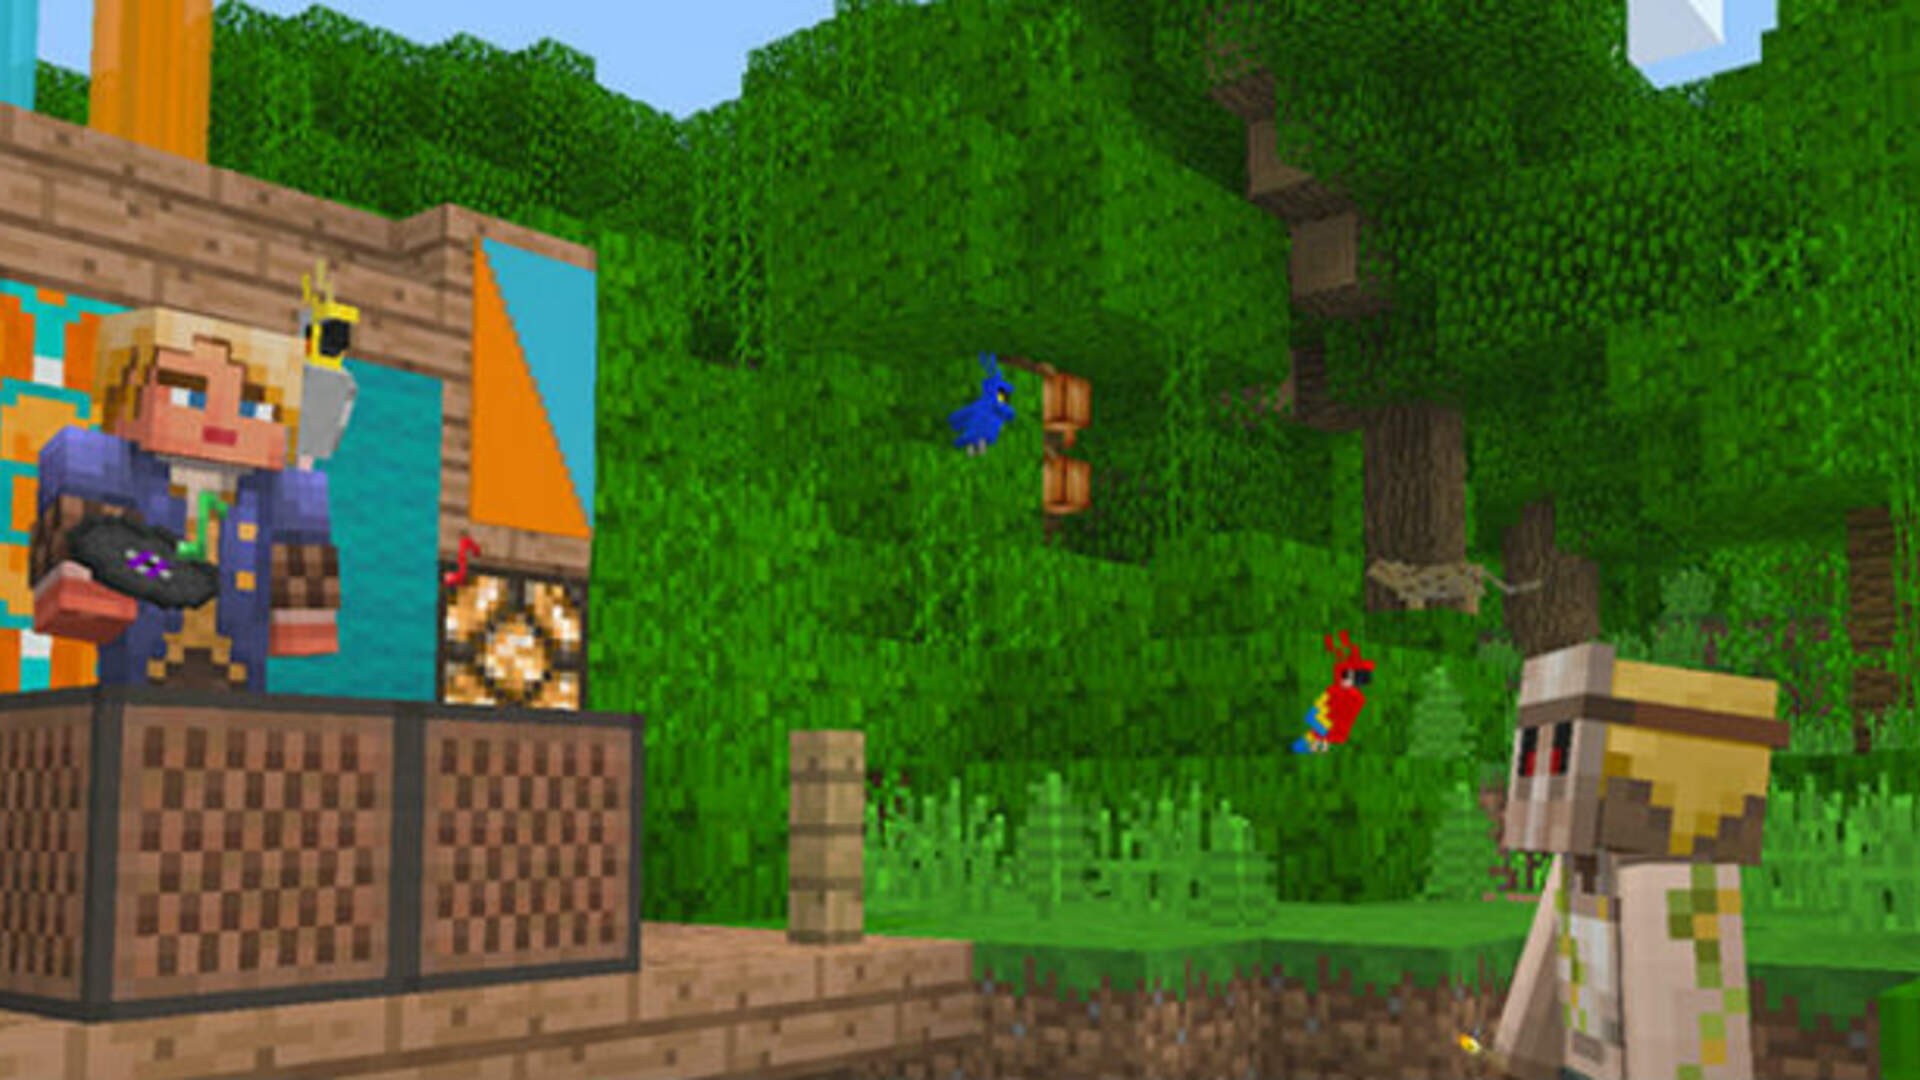 Minecraft Bedrock Edition for Nintendo Switch Demoed on Twitch